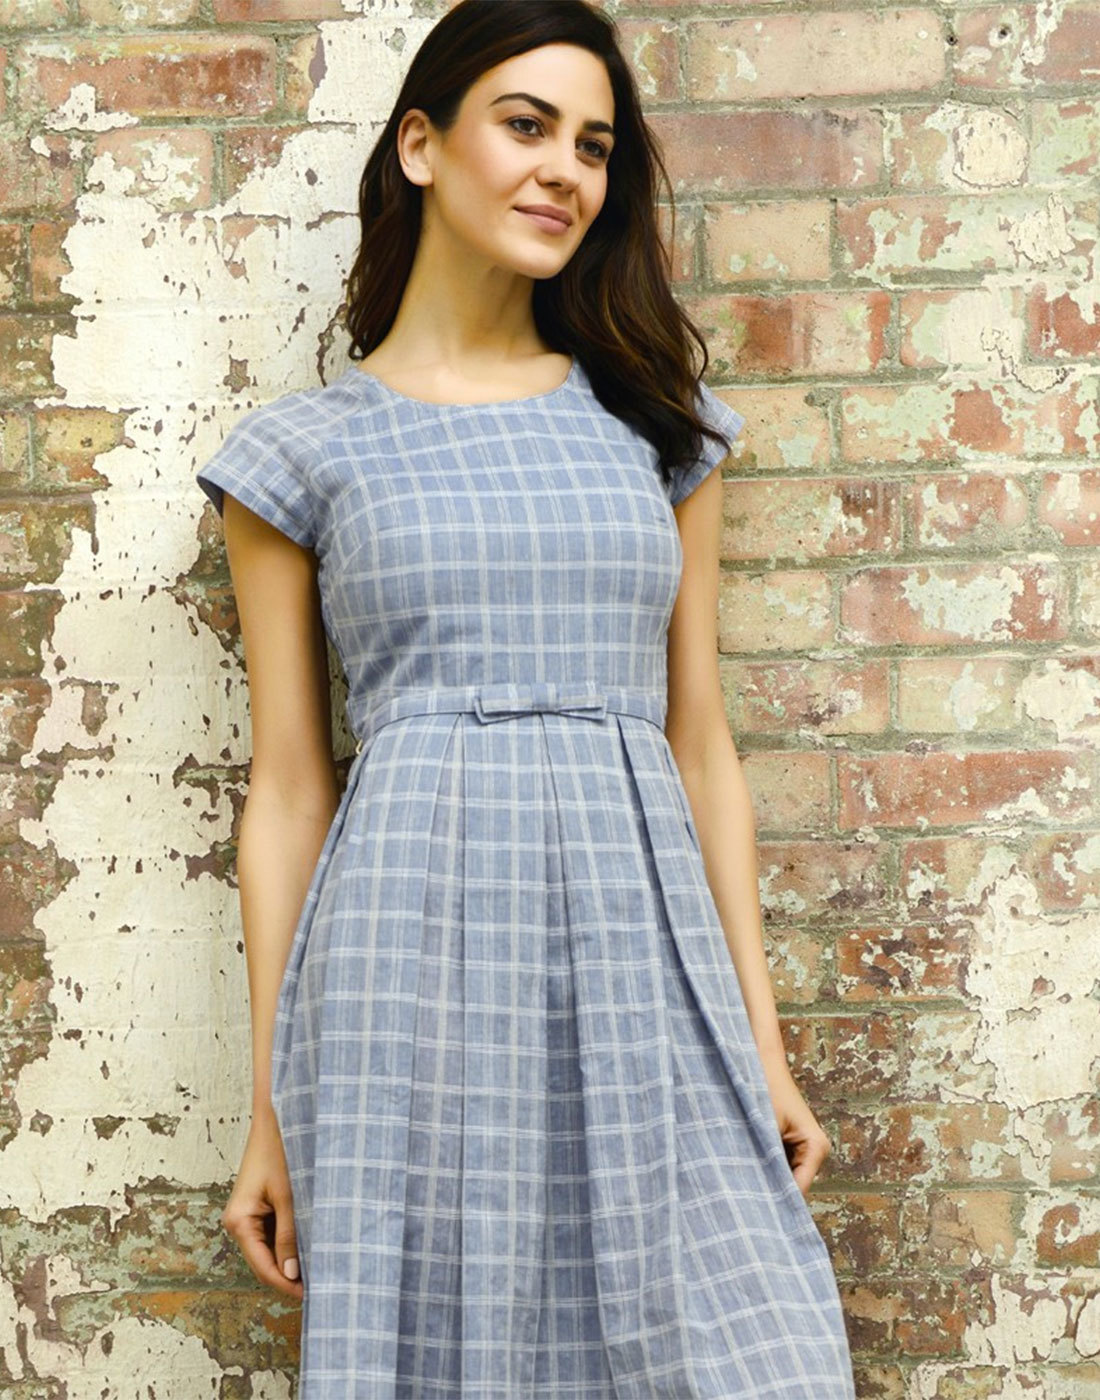 Mary FEVER Retro 1950s Vintage Check Prom Dress